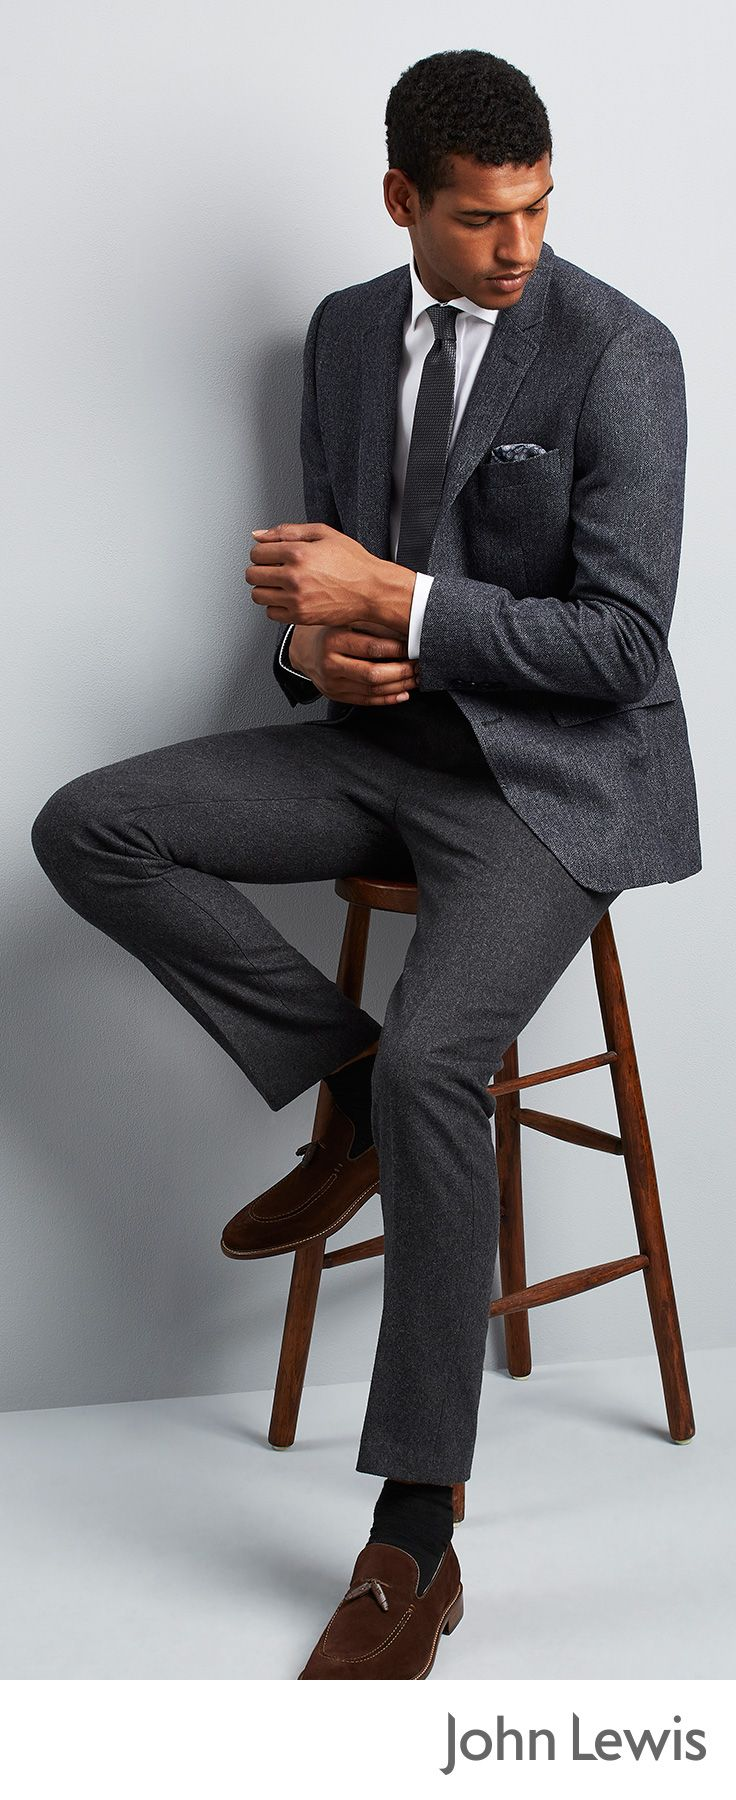 Equally at home in the boardroom as the bar, grey suits are a smart choice for adding versatility to your formal wardrobe. Crafted from subtly textured birdseye fabric in a charcoal tone, this John Lewis suit will make a welcome change from your black or navy weekday attire. Wear it with a plain double cuff shirt, silk tie and suede shoes for an understated yet stylish look.